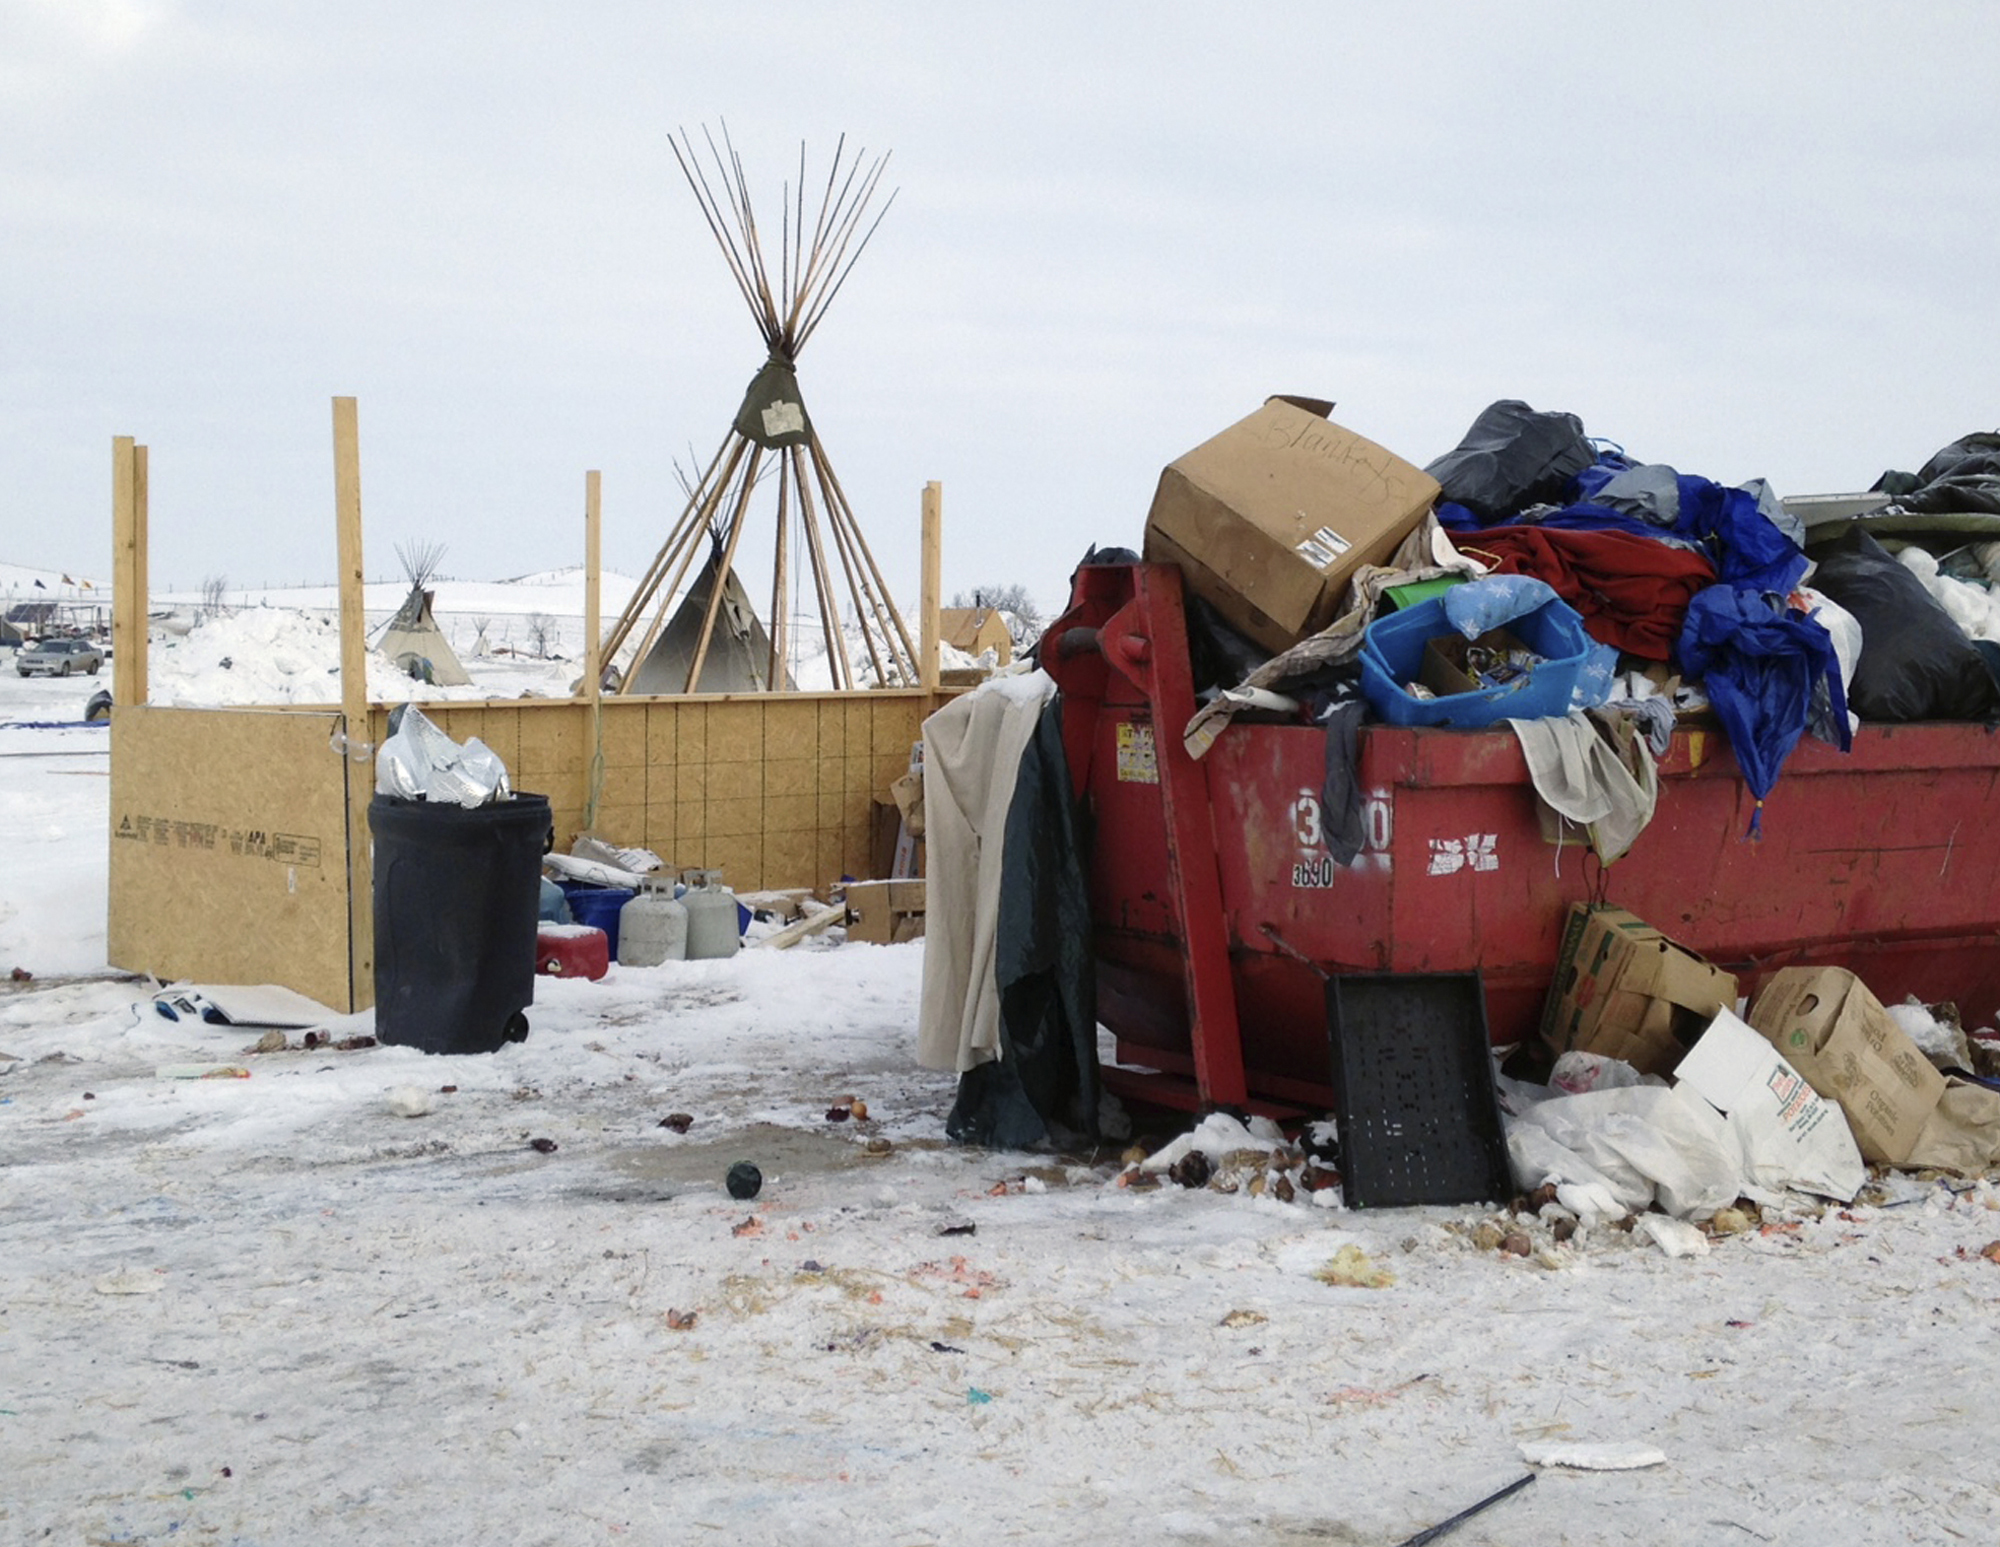 Trash is seen piled in a dumpster at an encampment set up near Cannon Ball, N.D., on Feb. 8, 2017, for opponents against the construction of the Dakota Access pipeline. (AP Photo/James MacPherson)